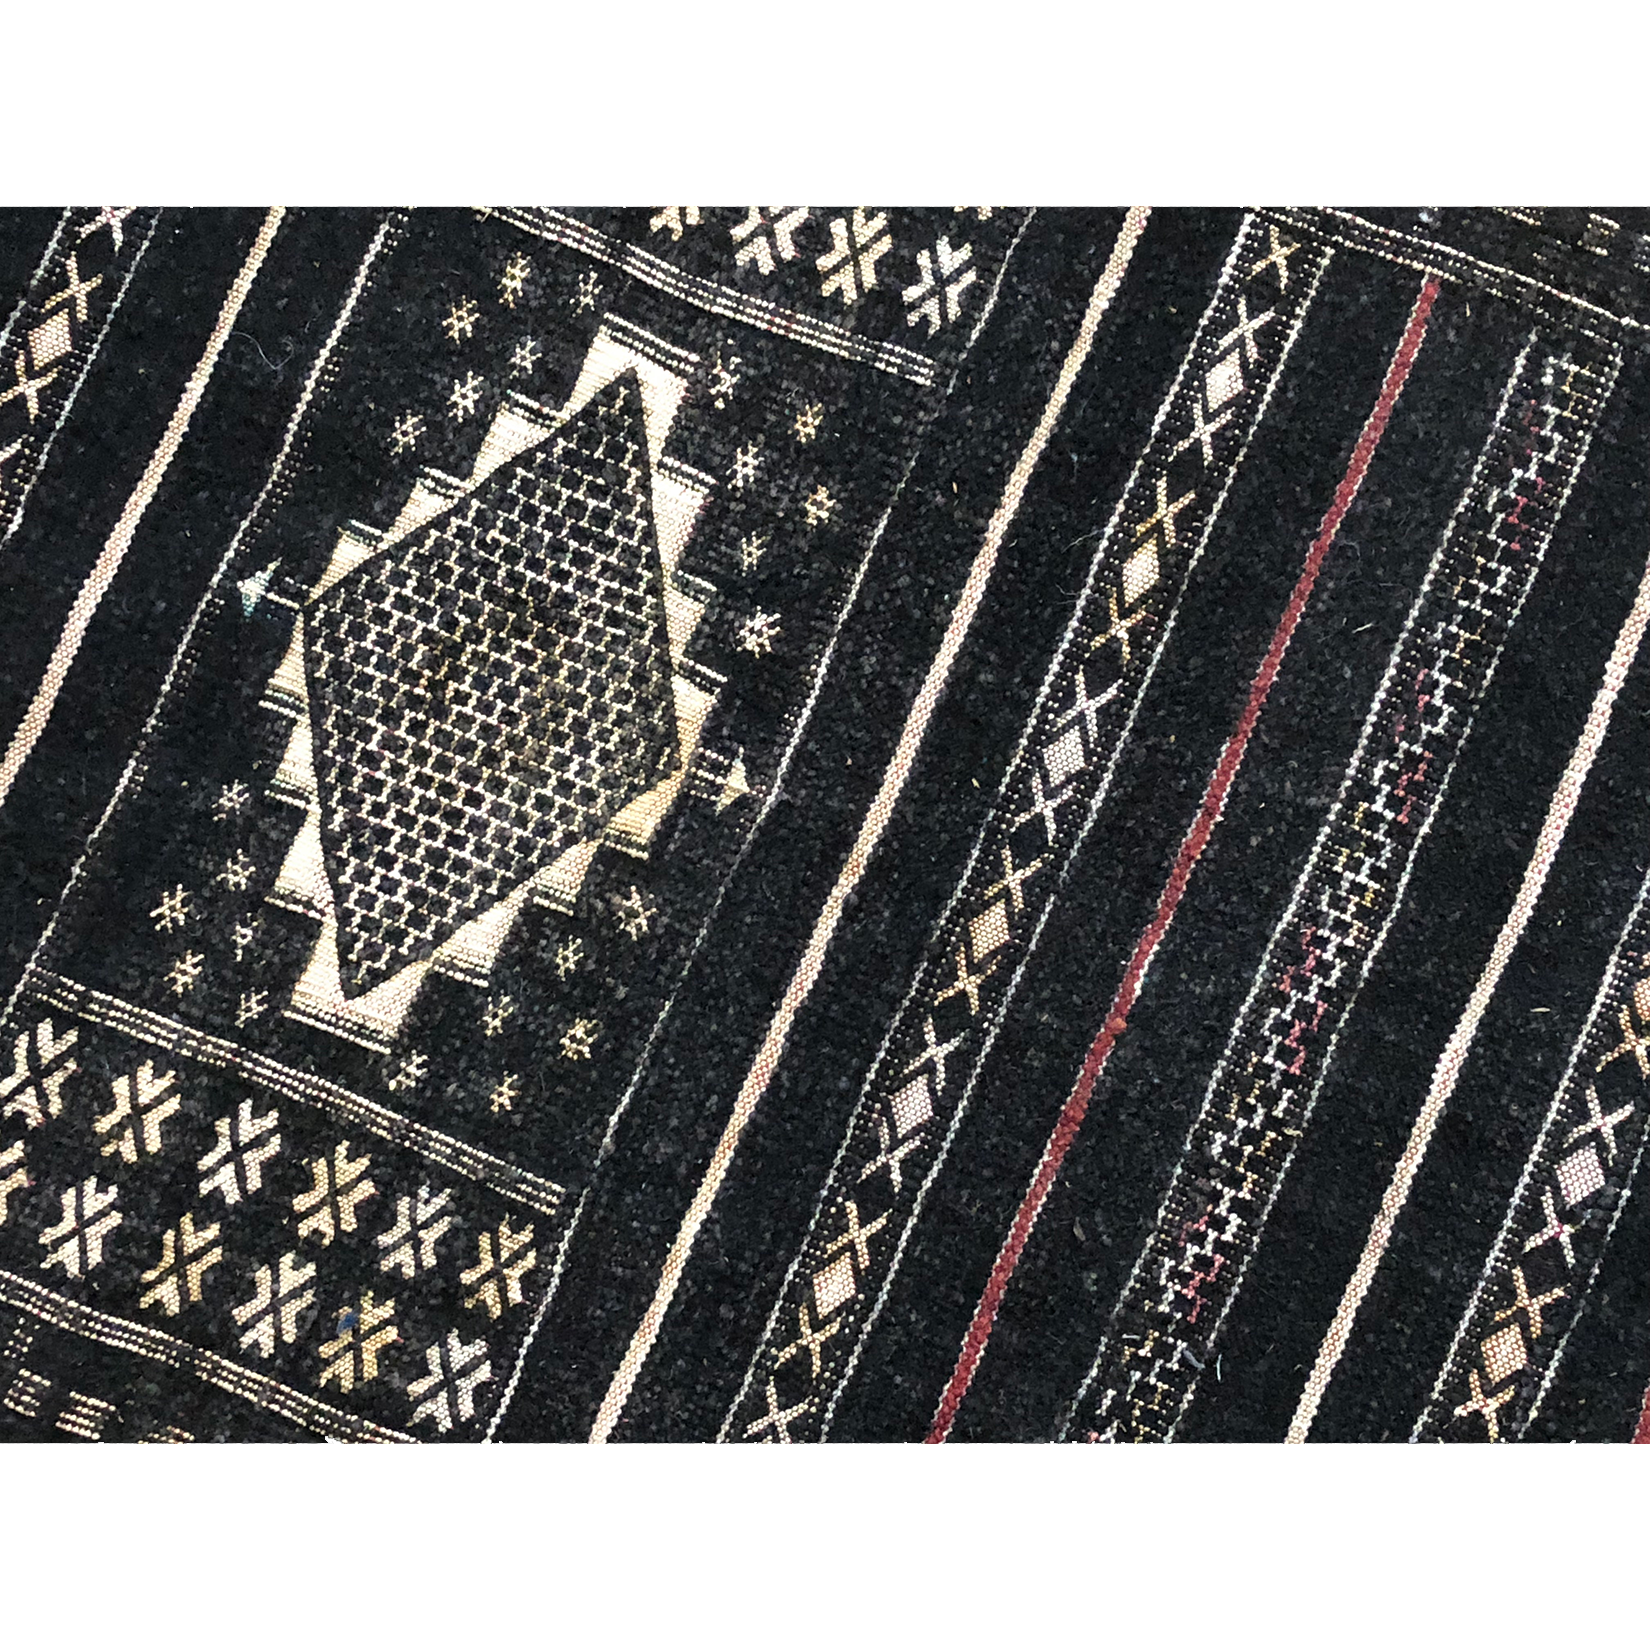 Black Moroccan runner rug with geometric pattern design  - Kantara | Moroccan Rugs